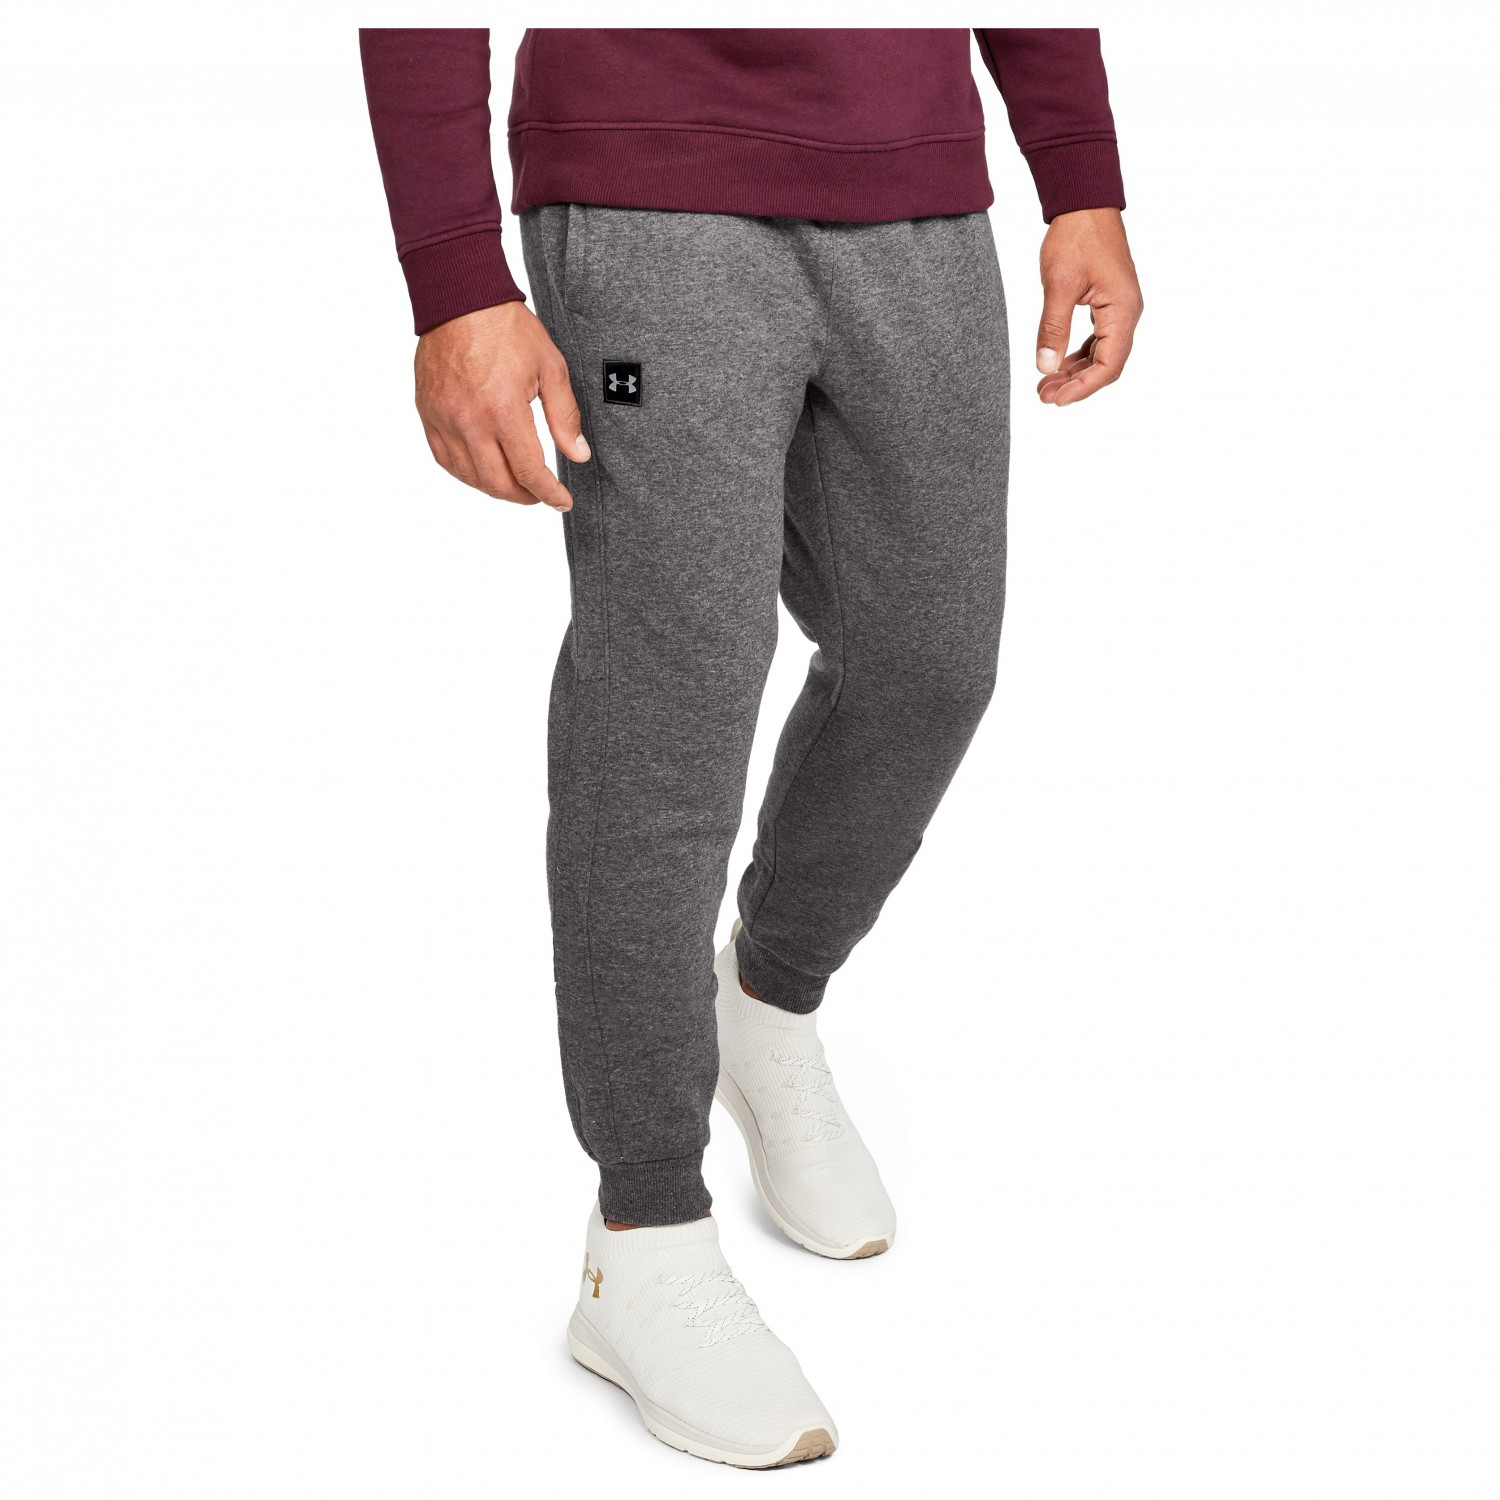 462a4f23ffa4e3 Under Armour Rival Fleece Jogger - Tracksuit Trousers Men's | Buy ...